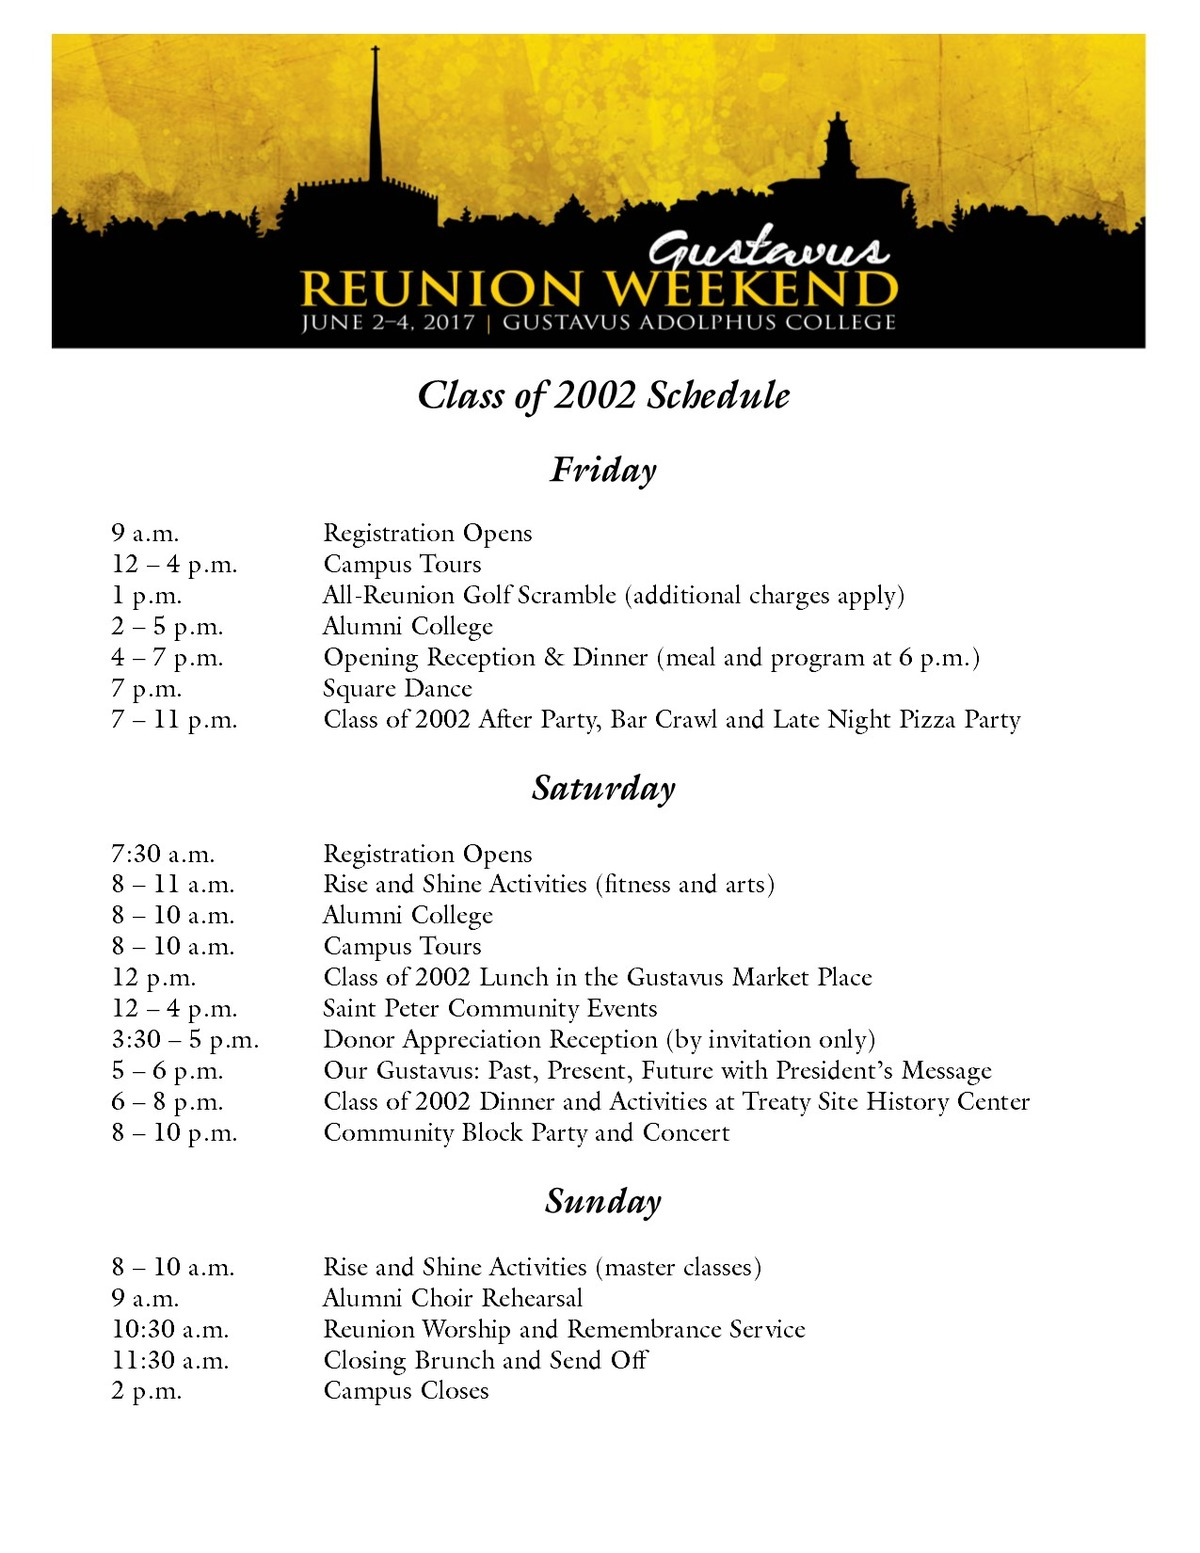 Class of 2002 Reunion Weekend Schedule